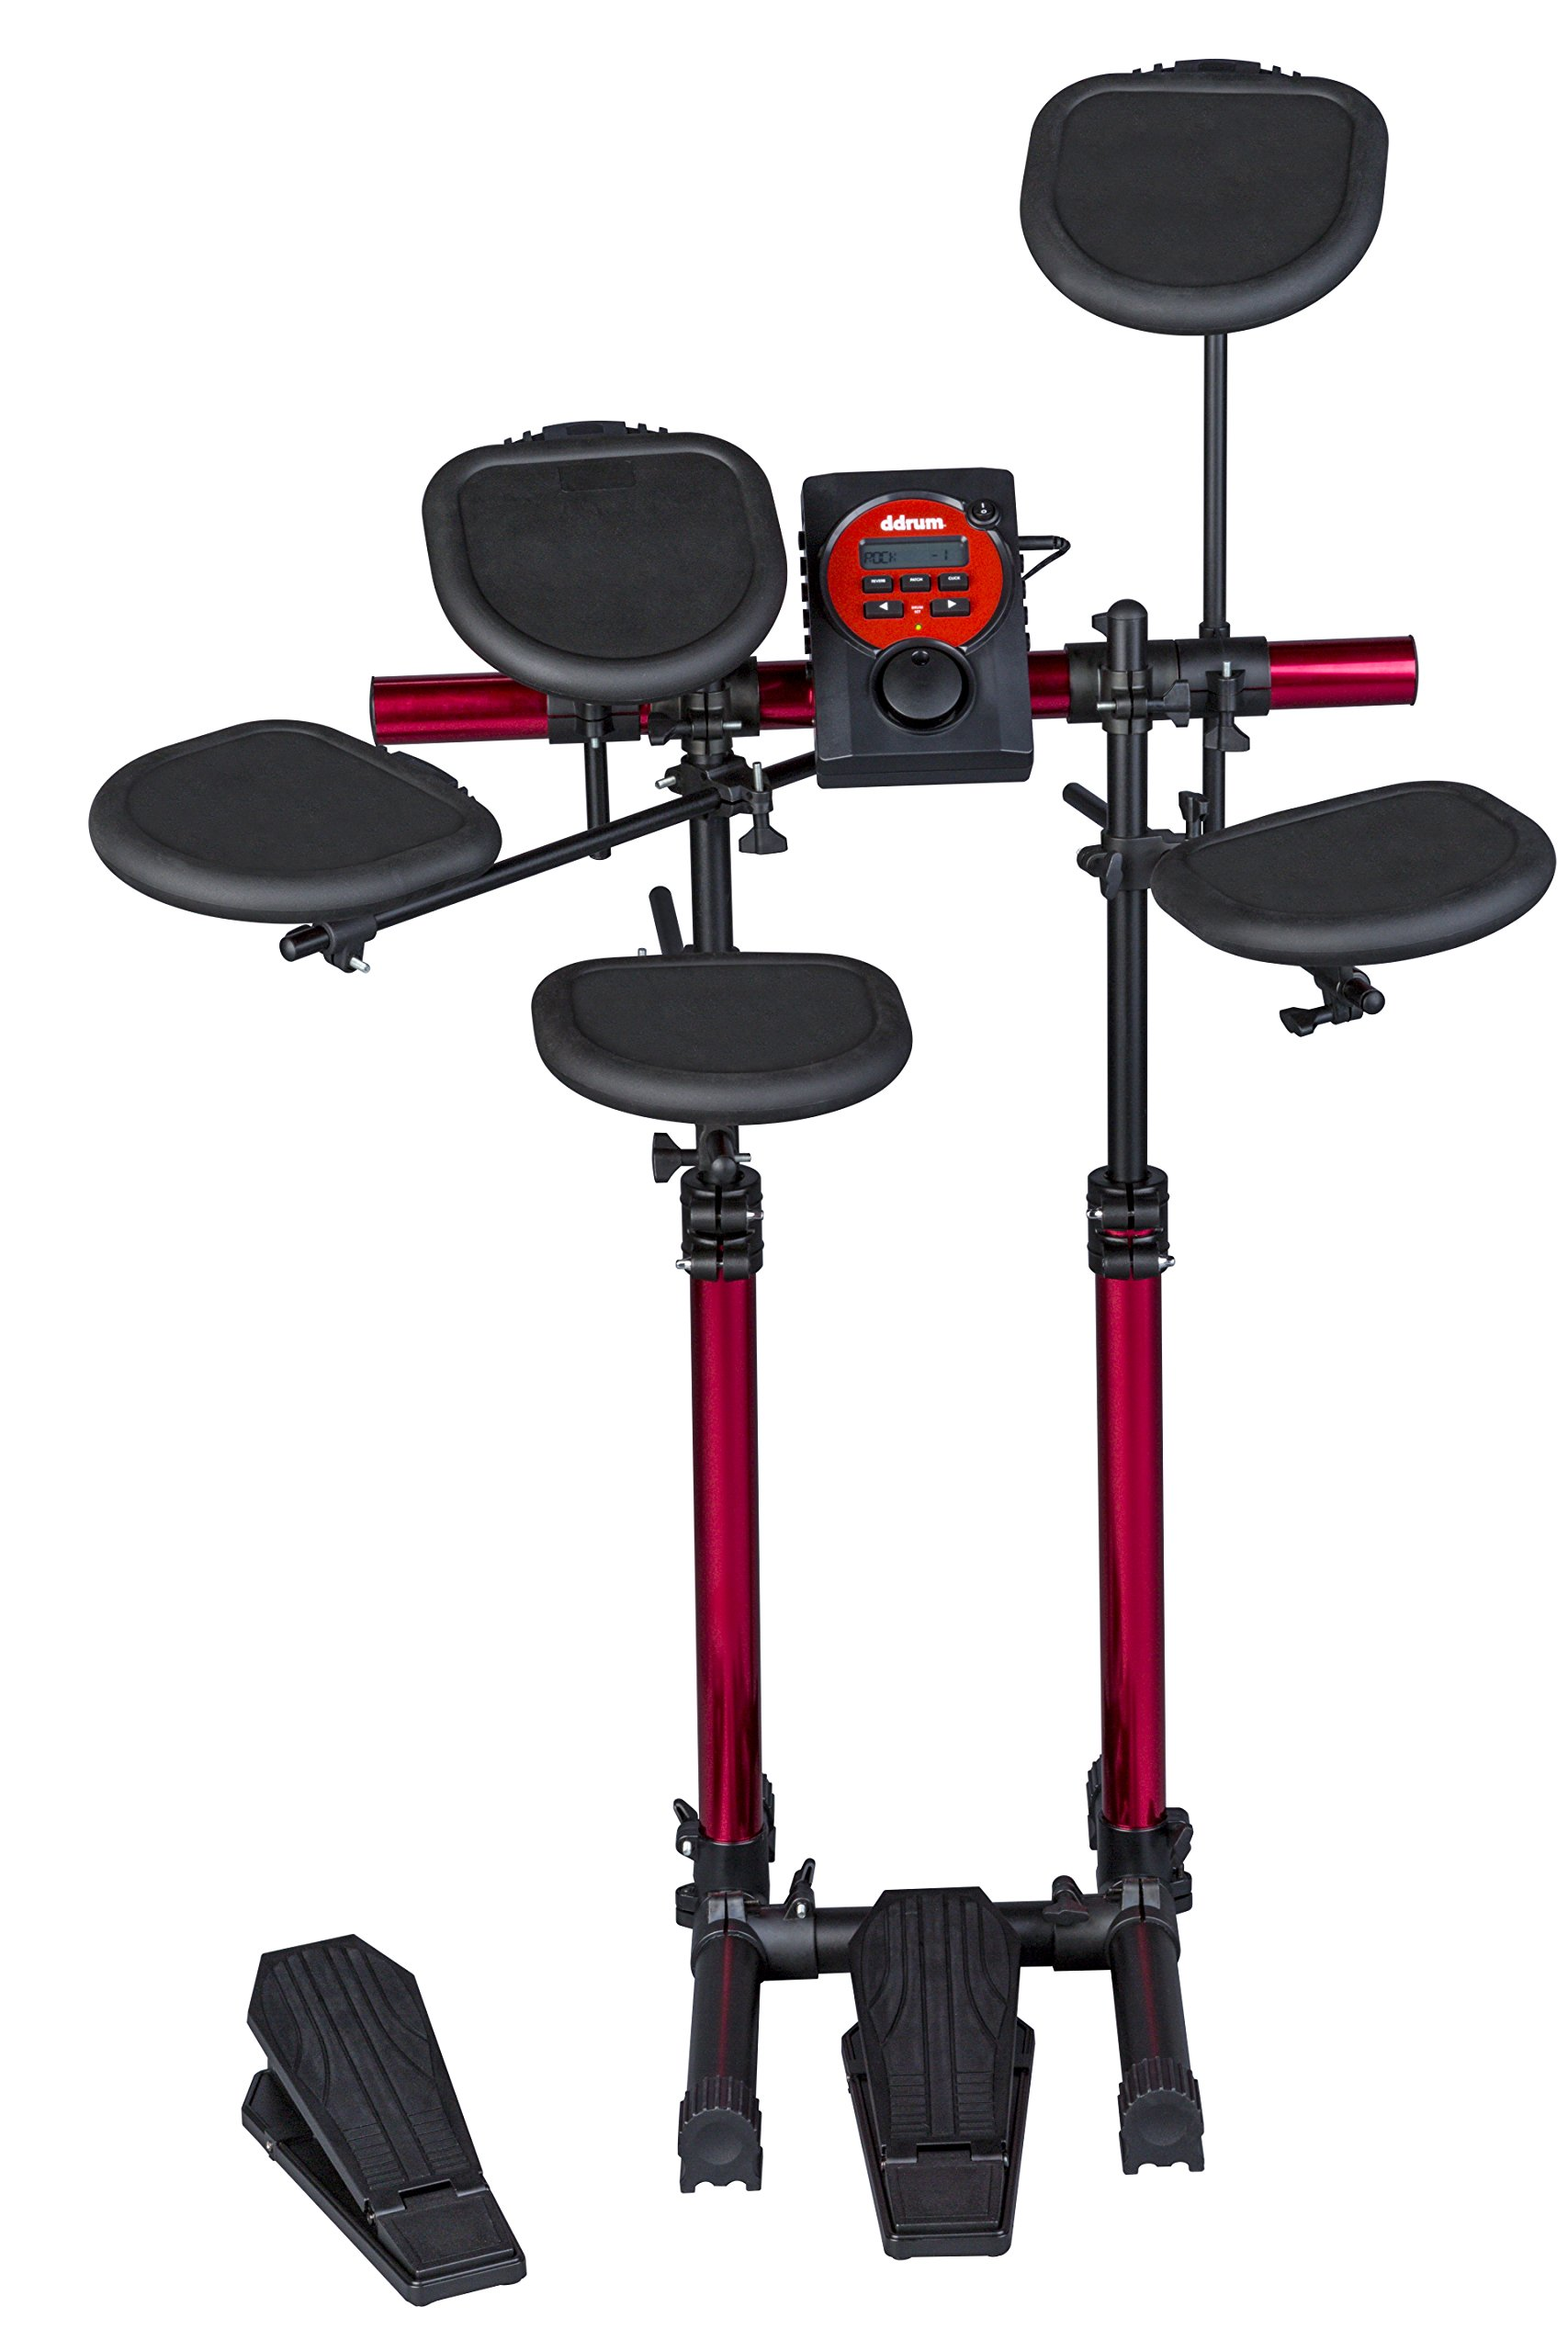 Ddrum DD Beta Compact size Drum Kit with Adjustable Rack